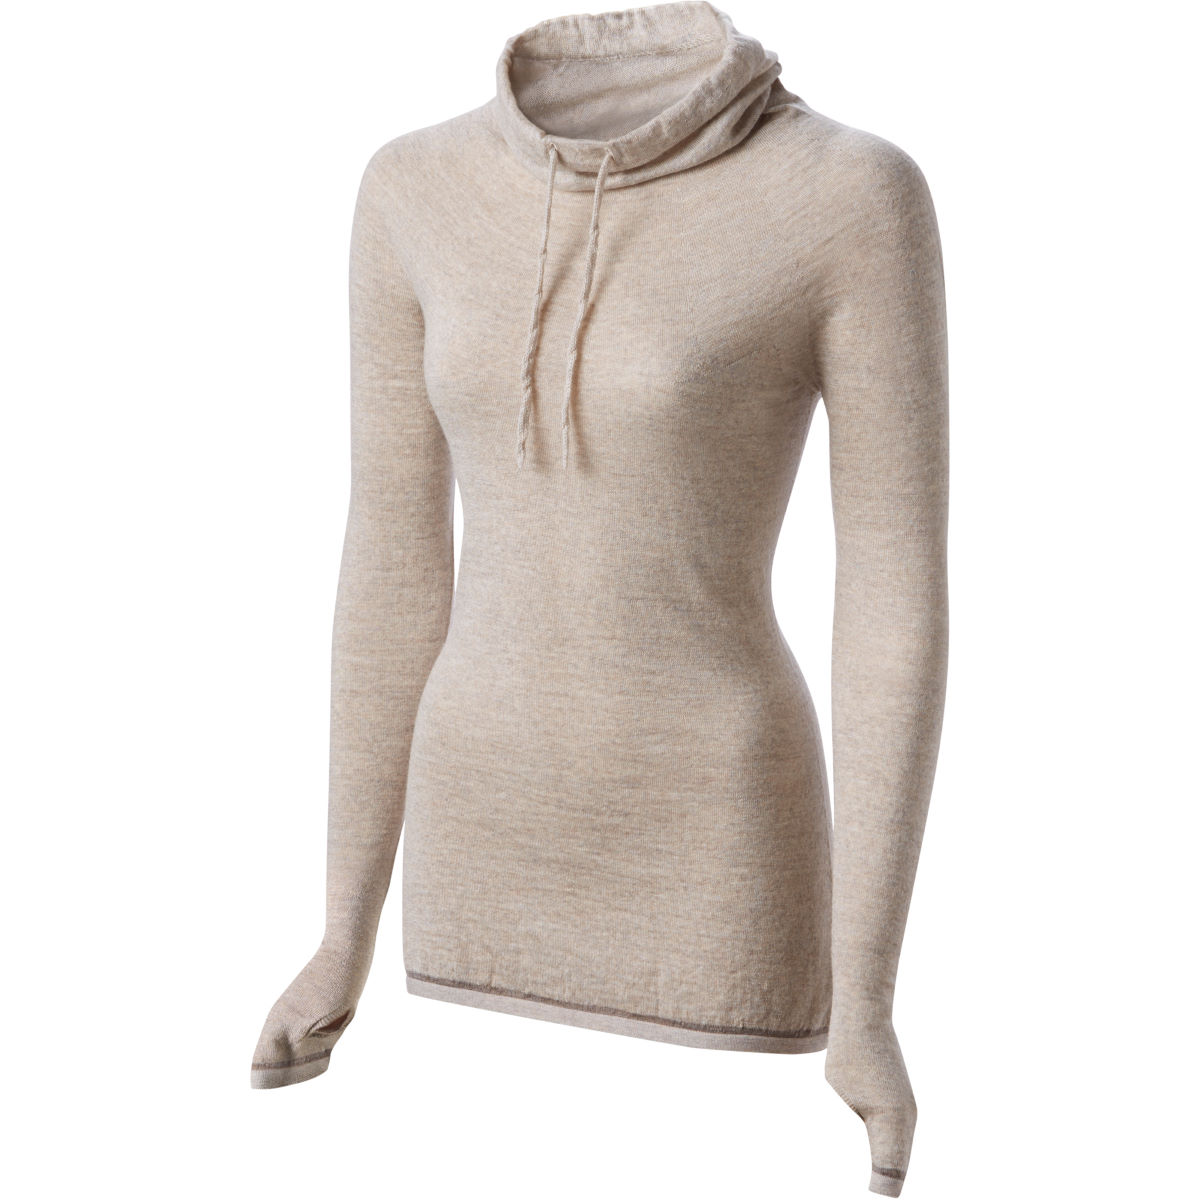 Maillot Femme FINDRA Caddon (col roulé) - XS Oatmeal/Pebble Maillots